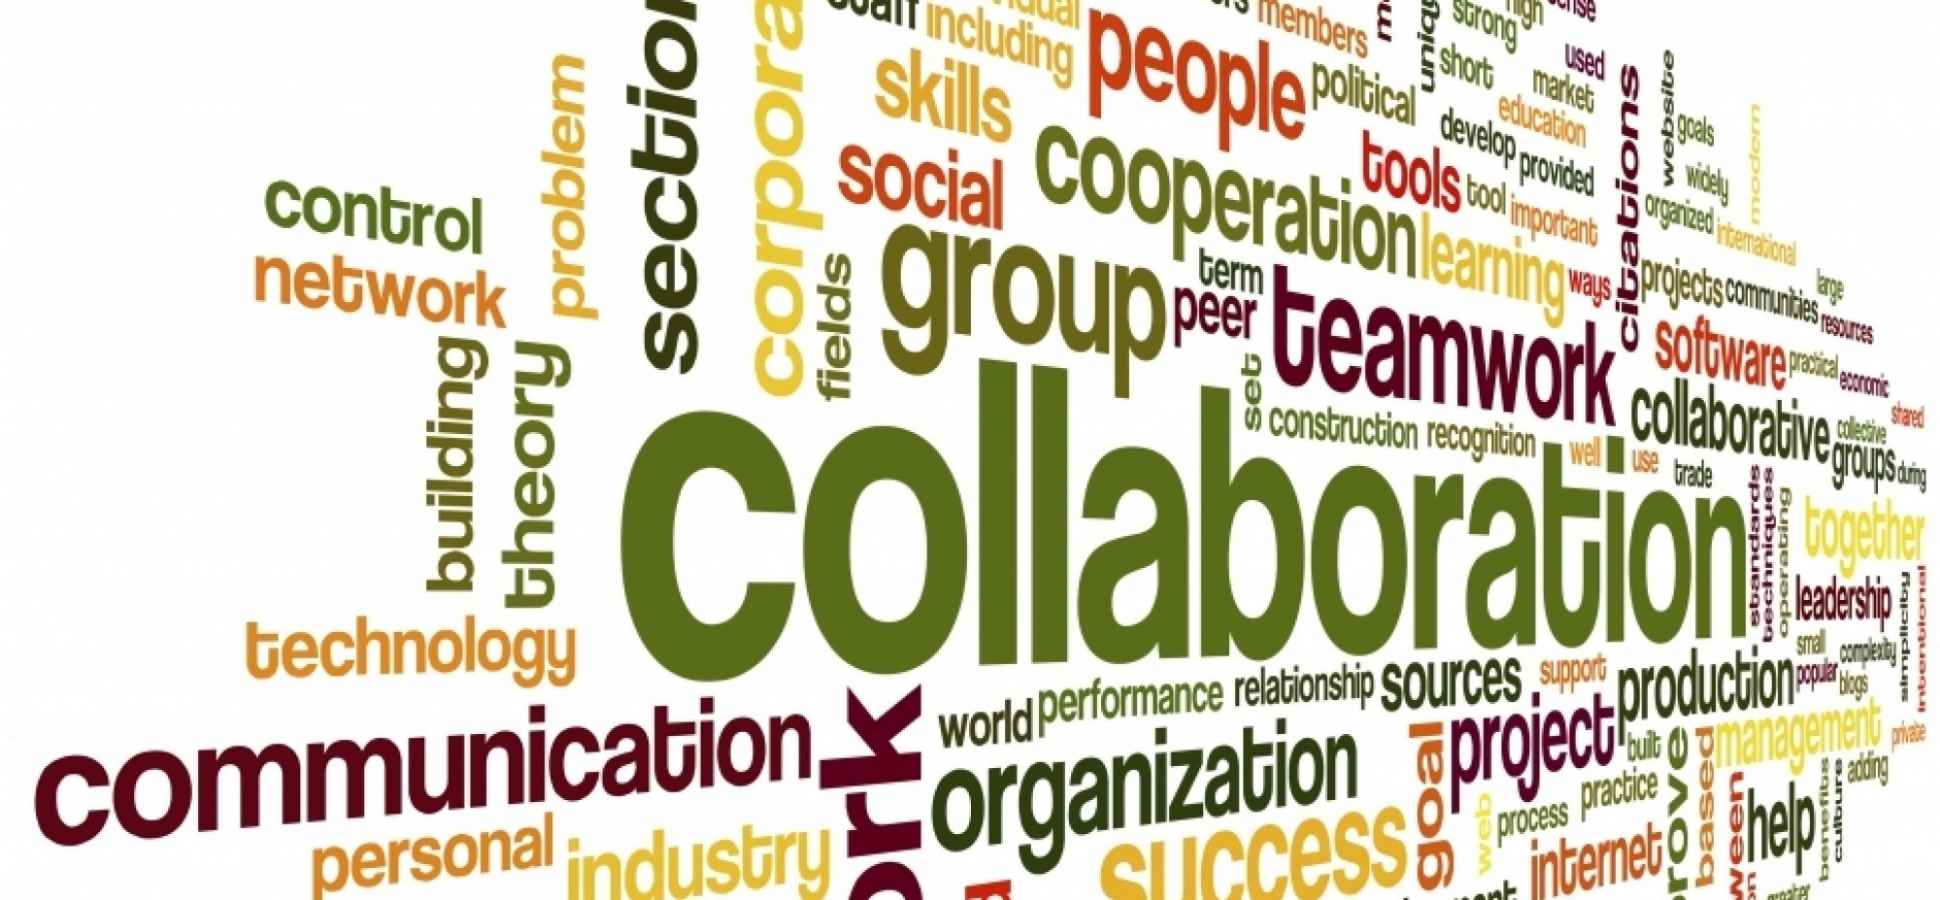 Contrary to Academic Evidence, Collaboration Is a Blessing